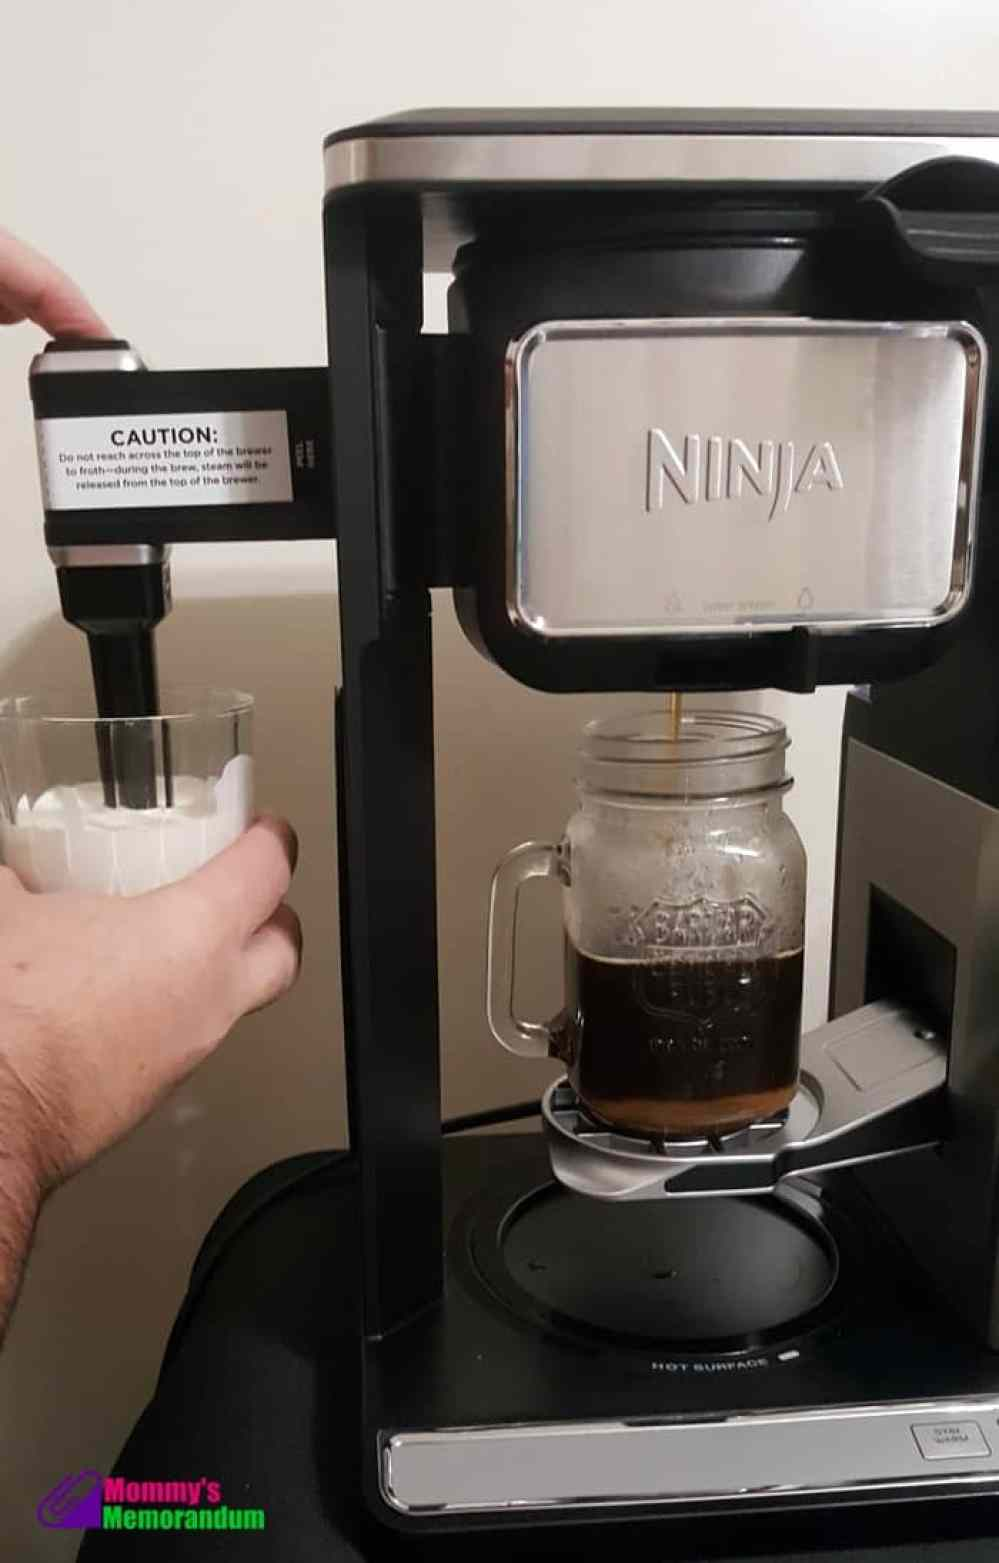 ninja-bar-toffee-coffee-brewing